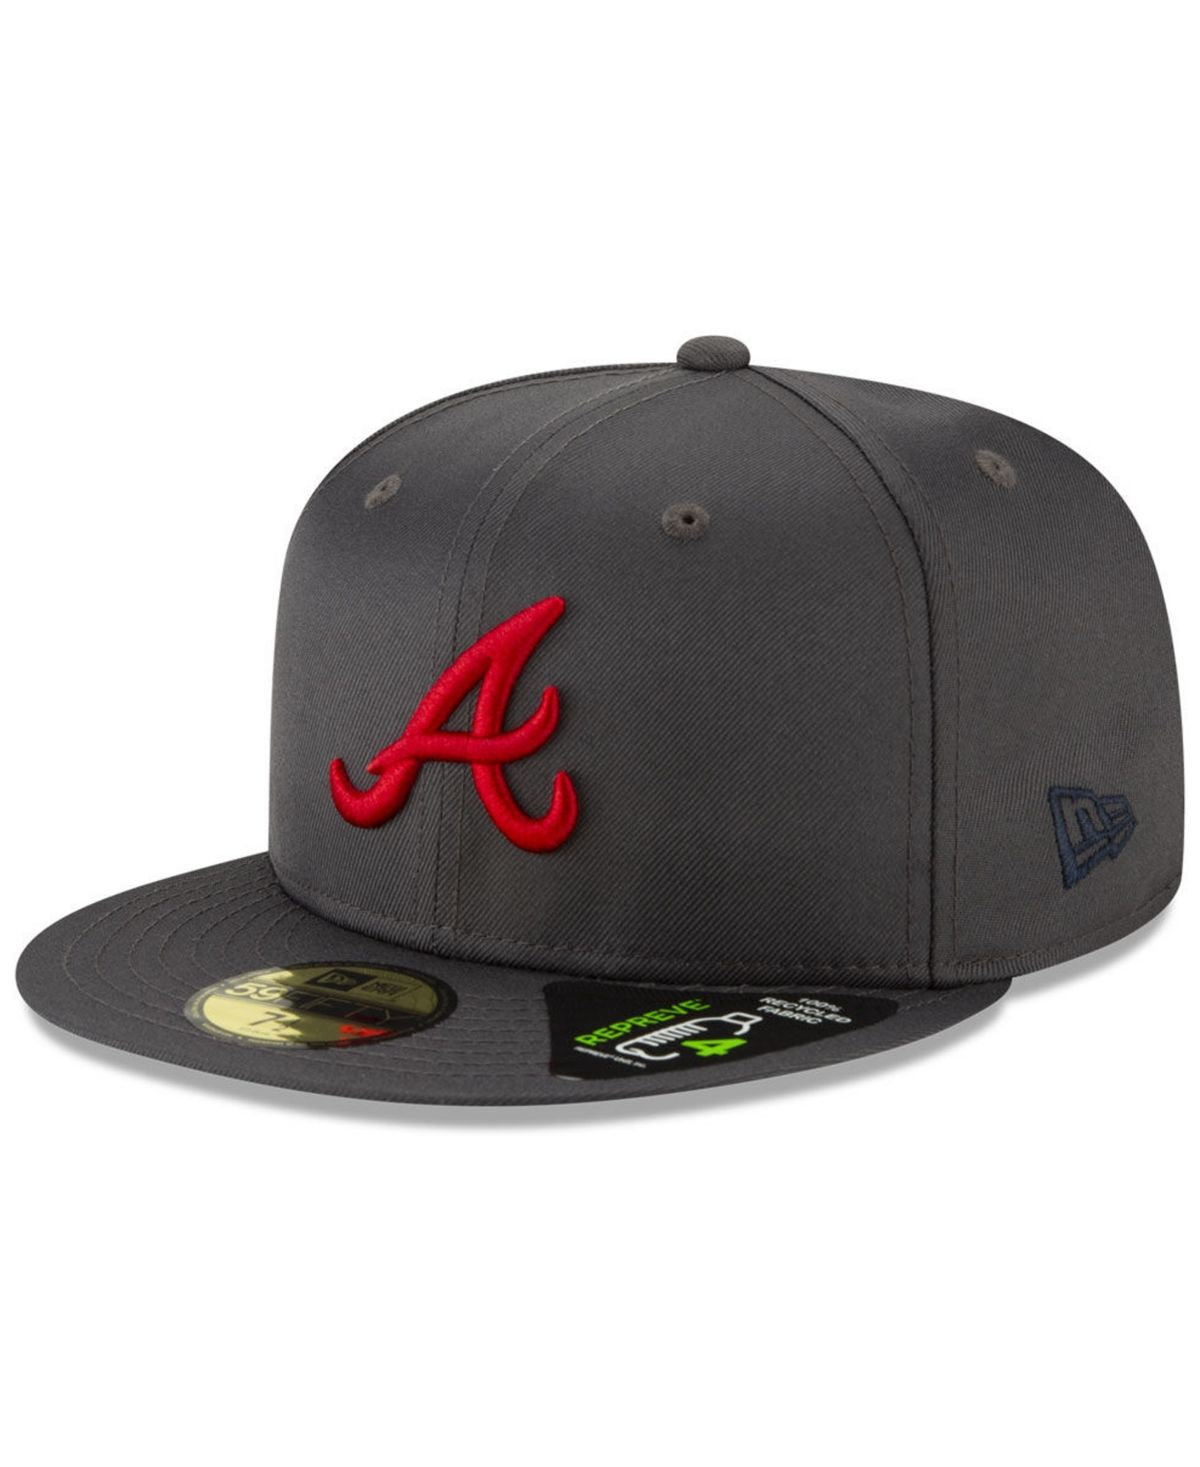 New Era Atlanta Braves Recycled 59fifty Fitted Cap Graphite Fitted Caps New Era Fitted Hats